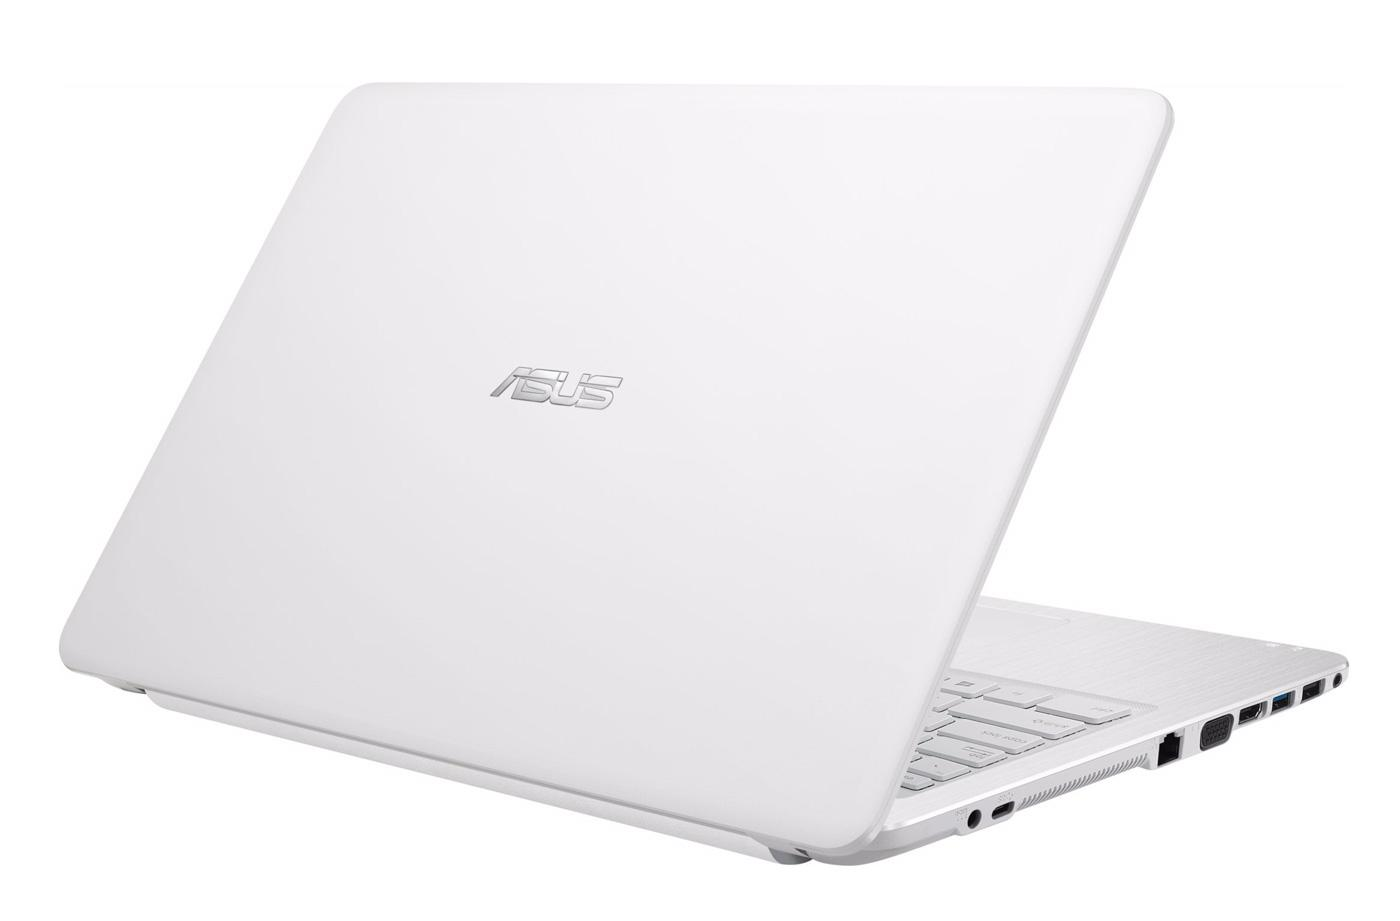 Ordinateur portable Asus X540SA-XX264T 15.6 pouces Leds Windows 10 64bits core i5, informatique Reunion 974, Futur Réunion informatique